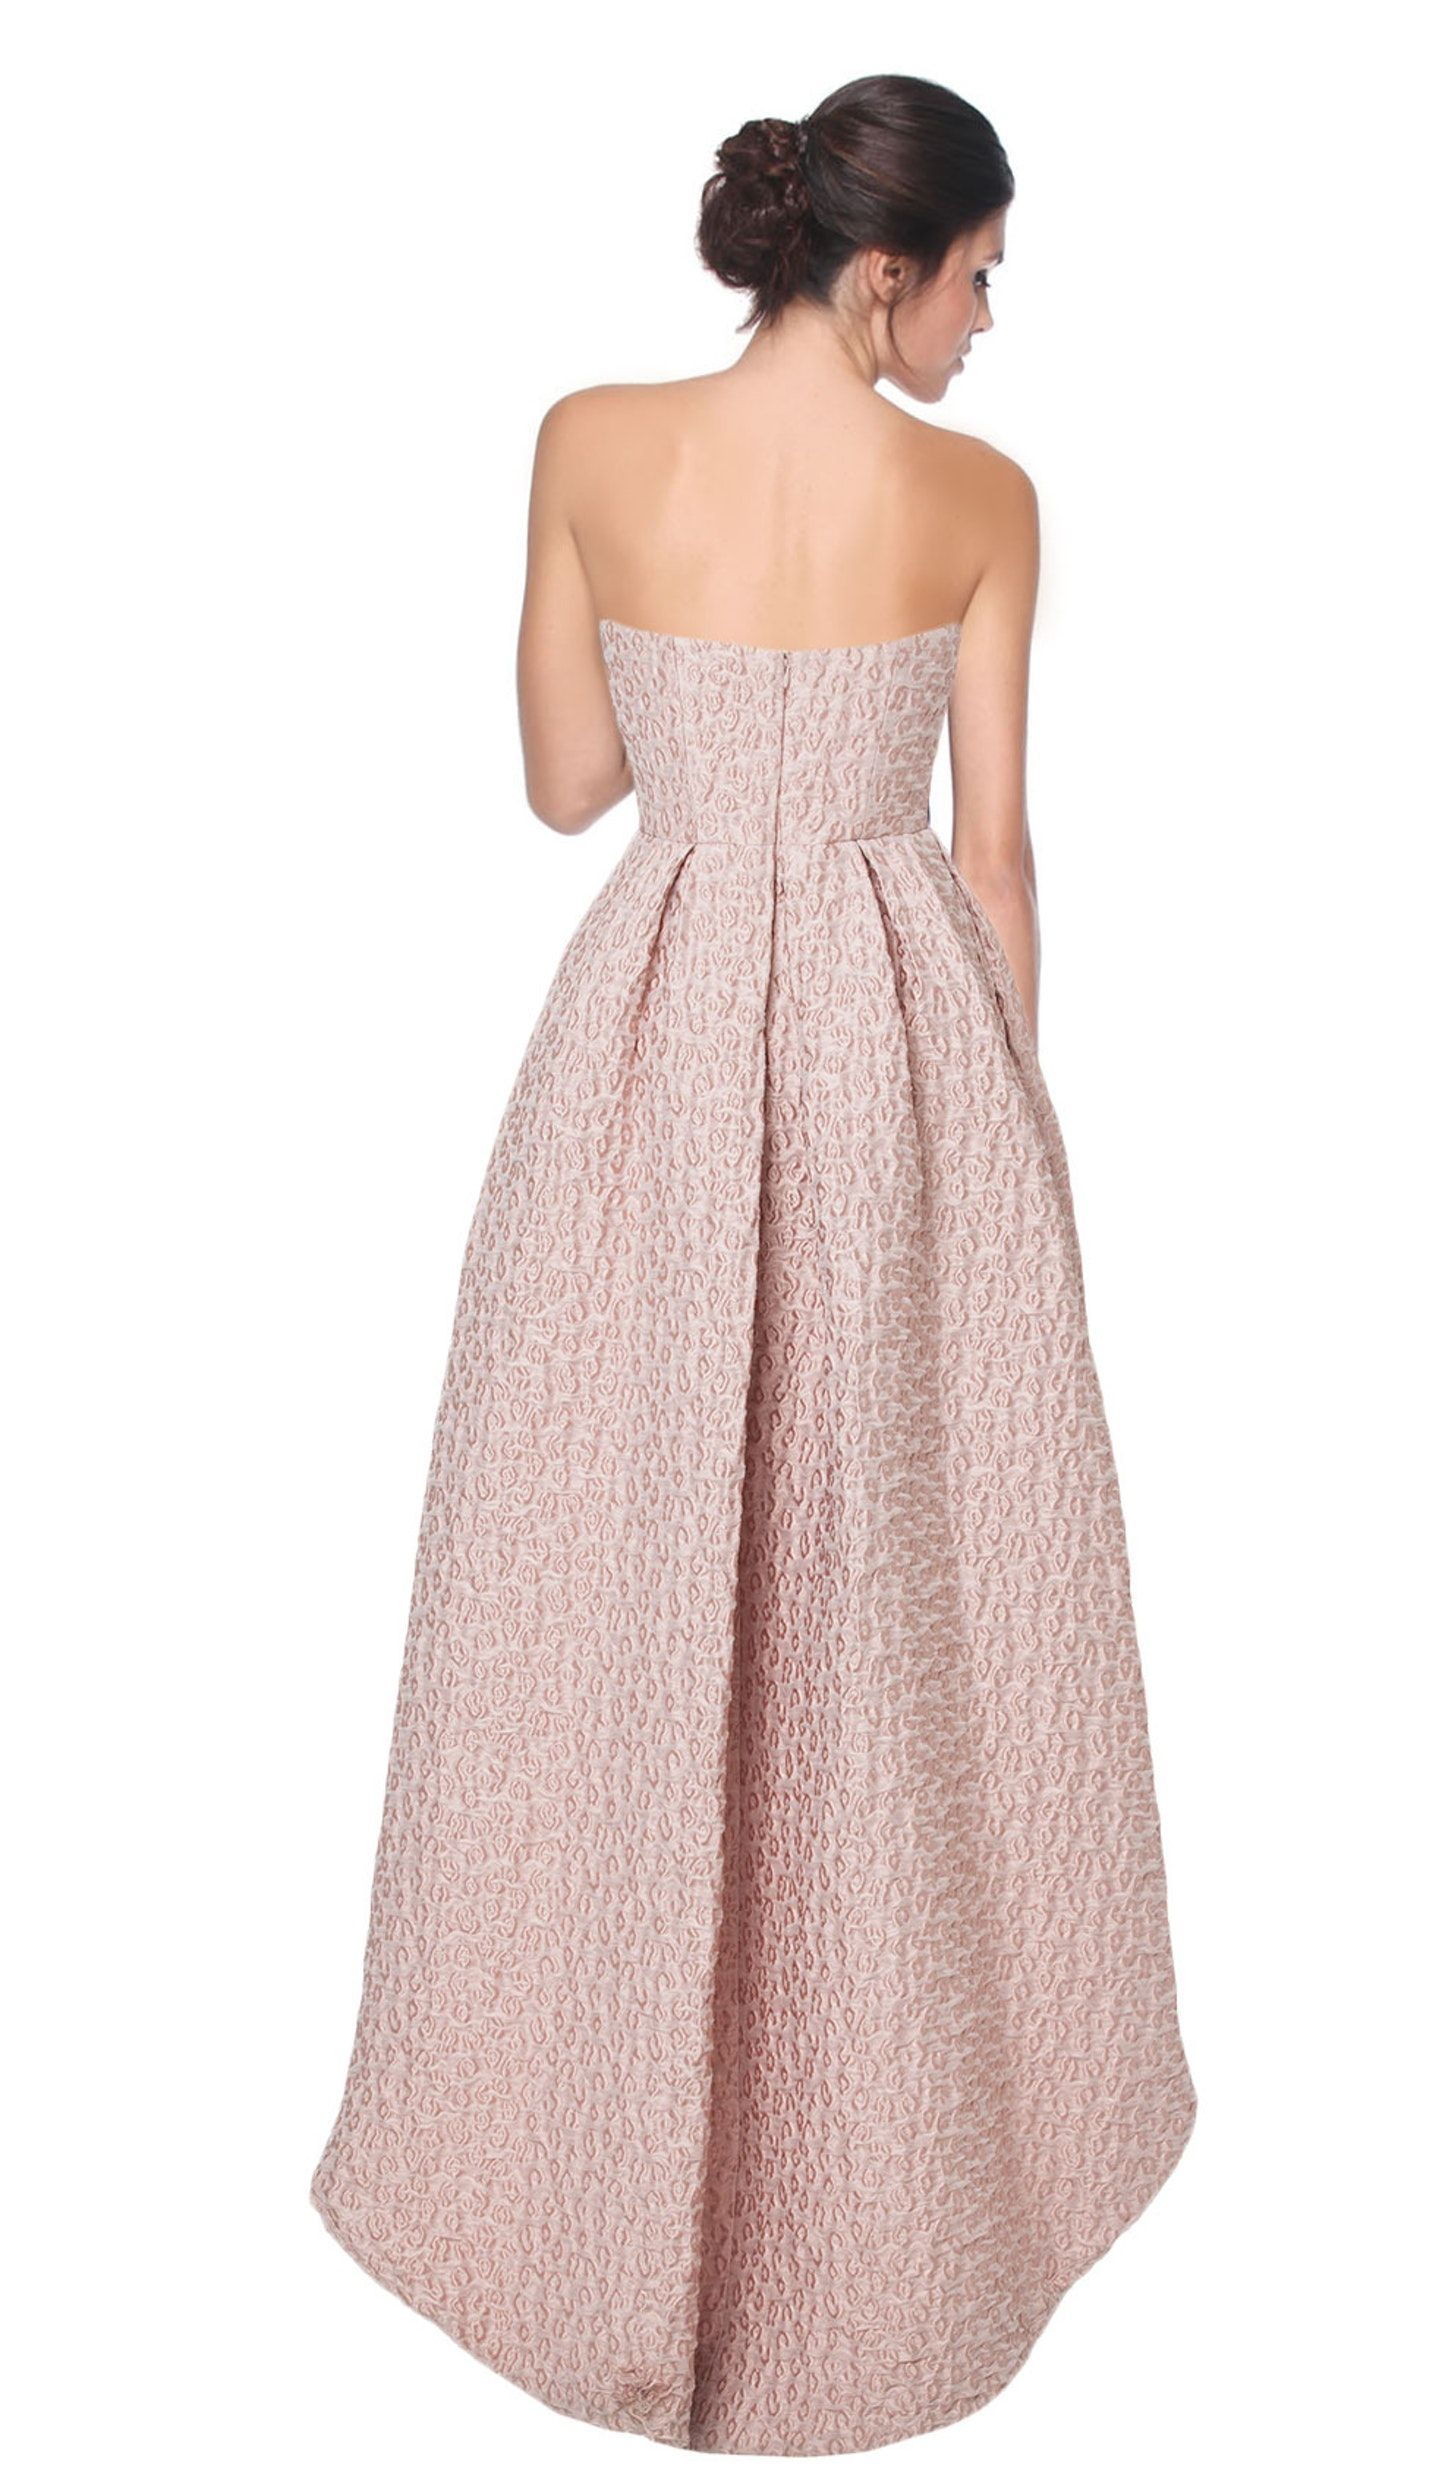 Strapless dusty rose dress cynthia rowley hire dresses long hire a dress with gorgeous jacquard detail in this dusty rose colour that will make you the best dressed guest this season hire bridesmaid dresses or s ombrellifo Choice Image